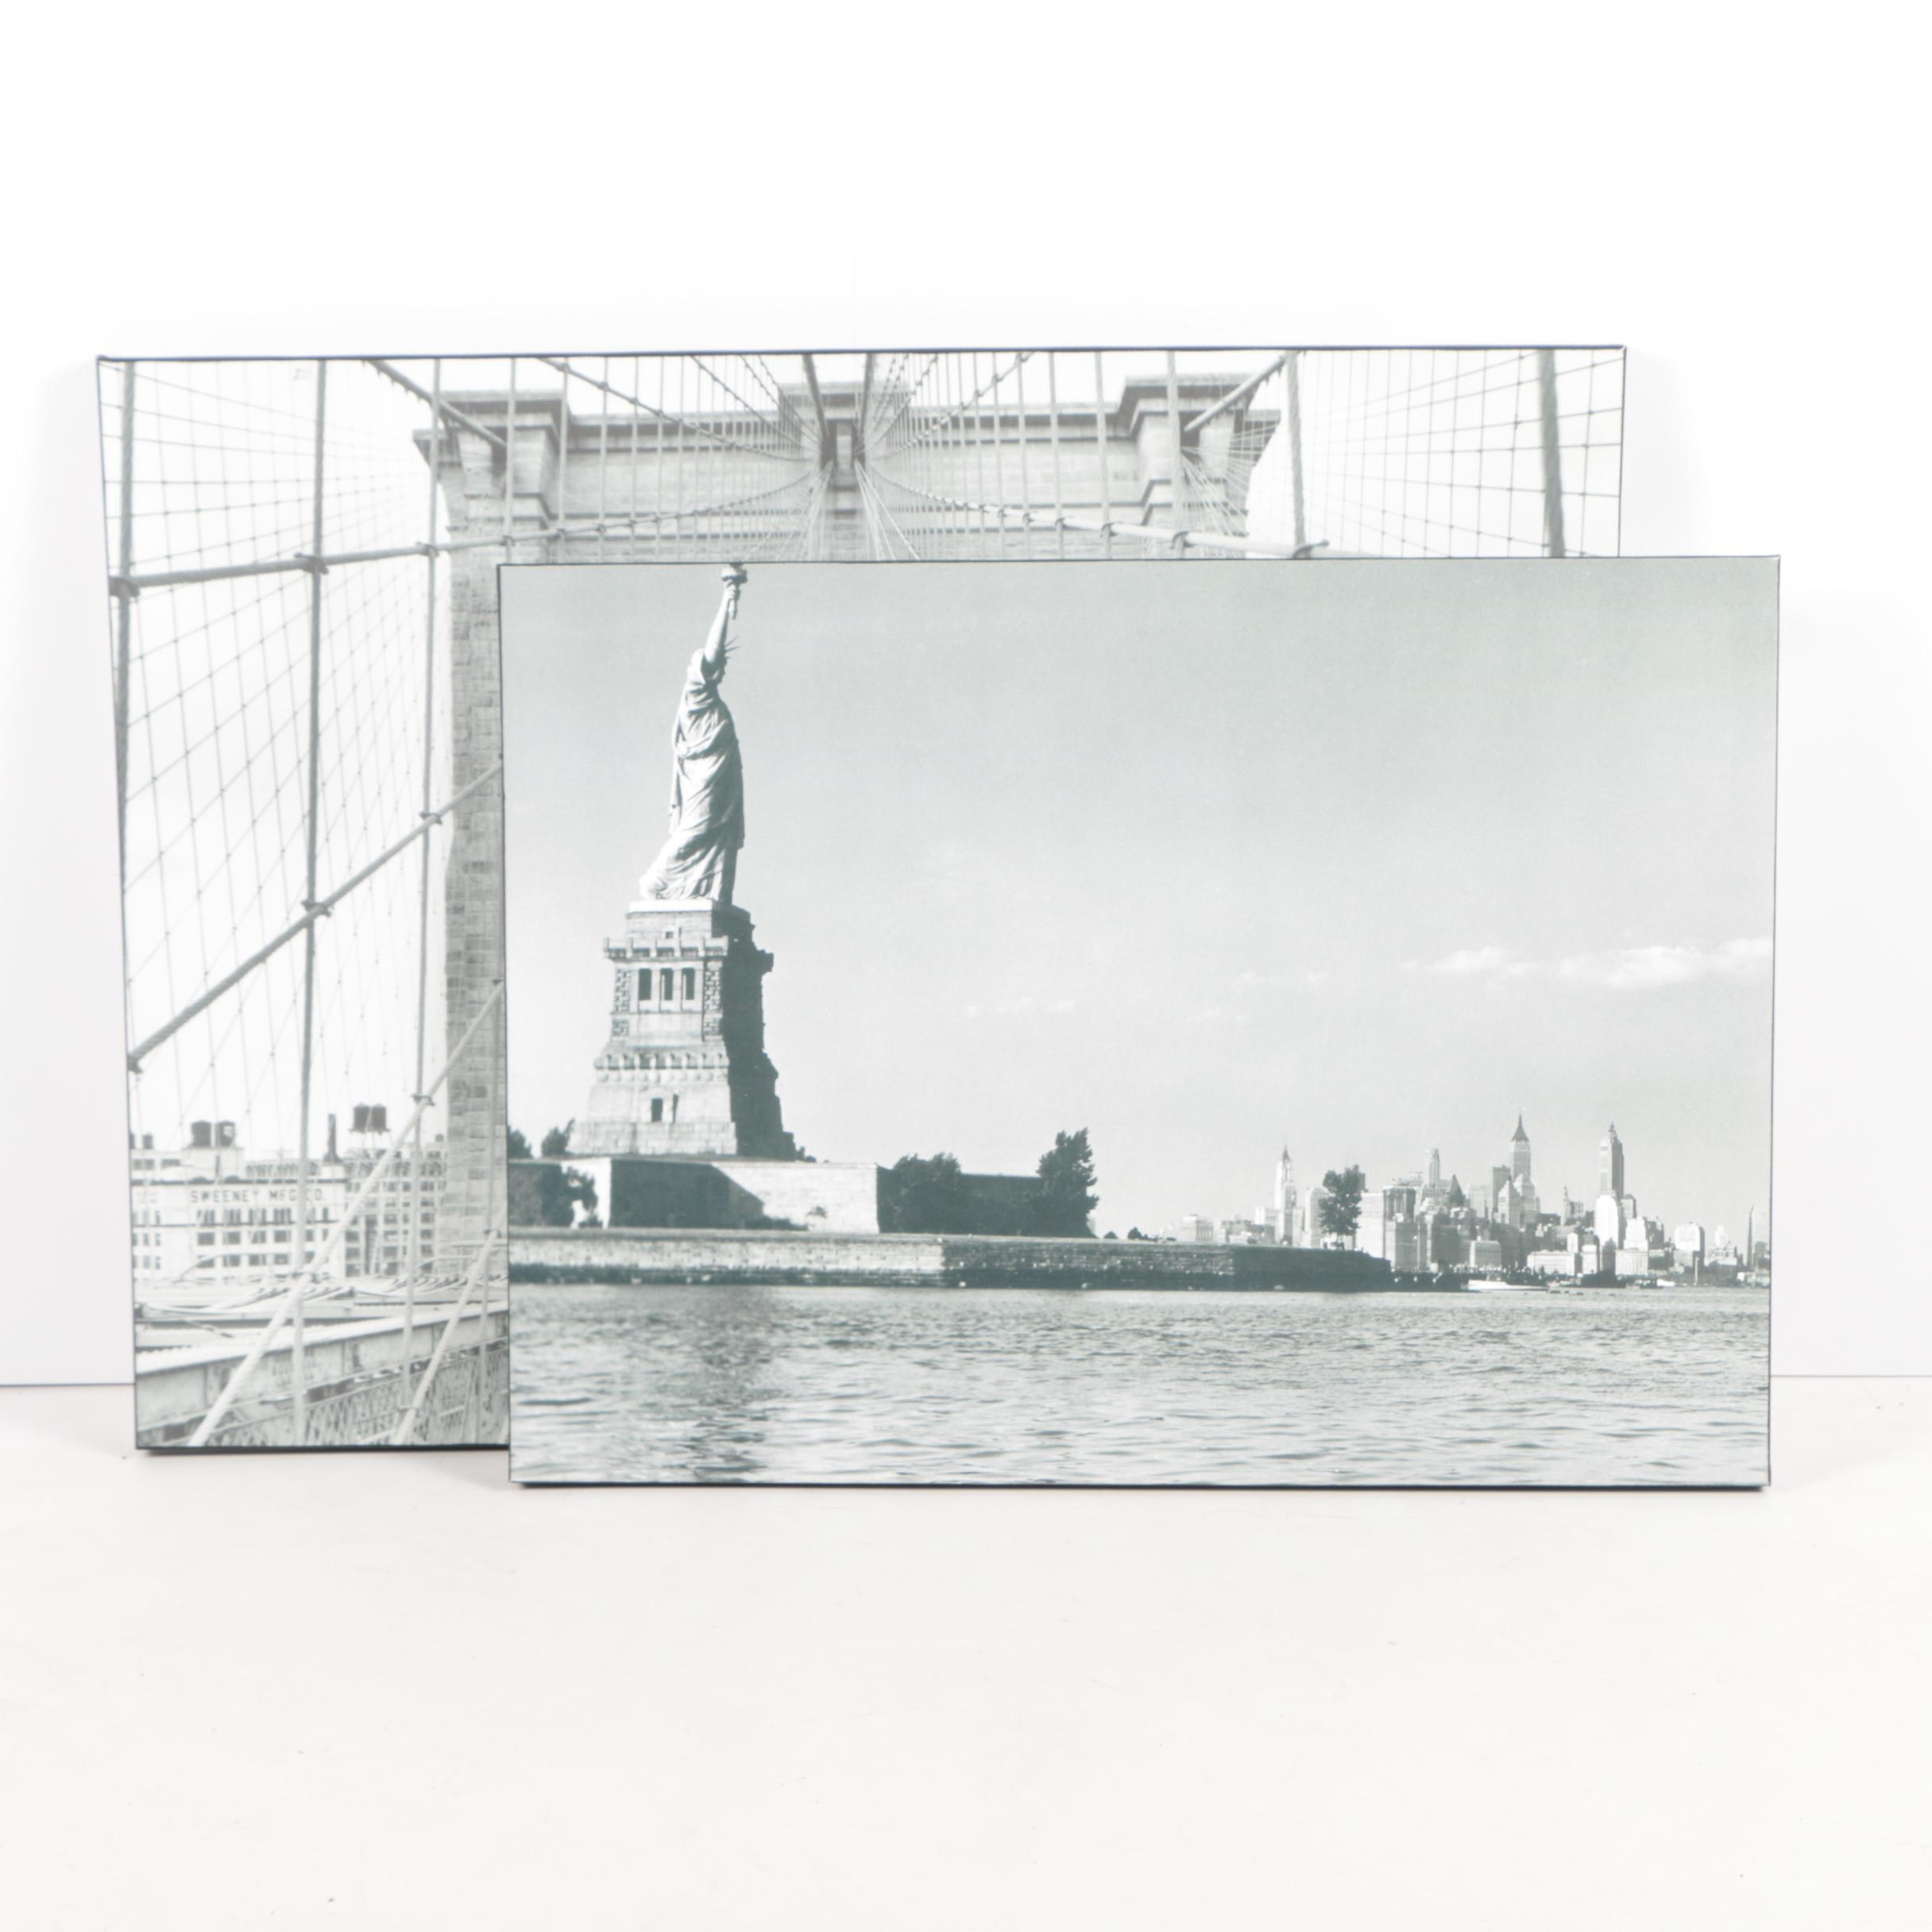 Giclée Prints on Canvas of the Statue of Liberty and the Brooklyn Bridge